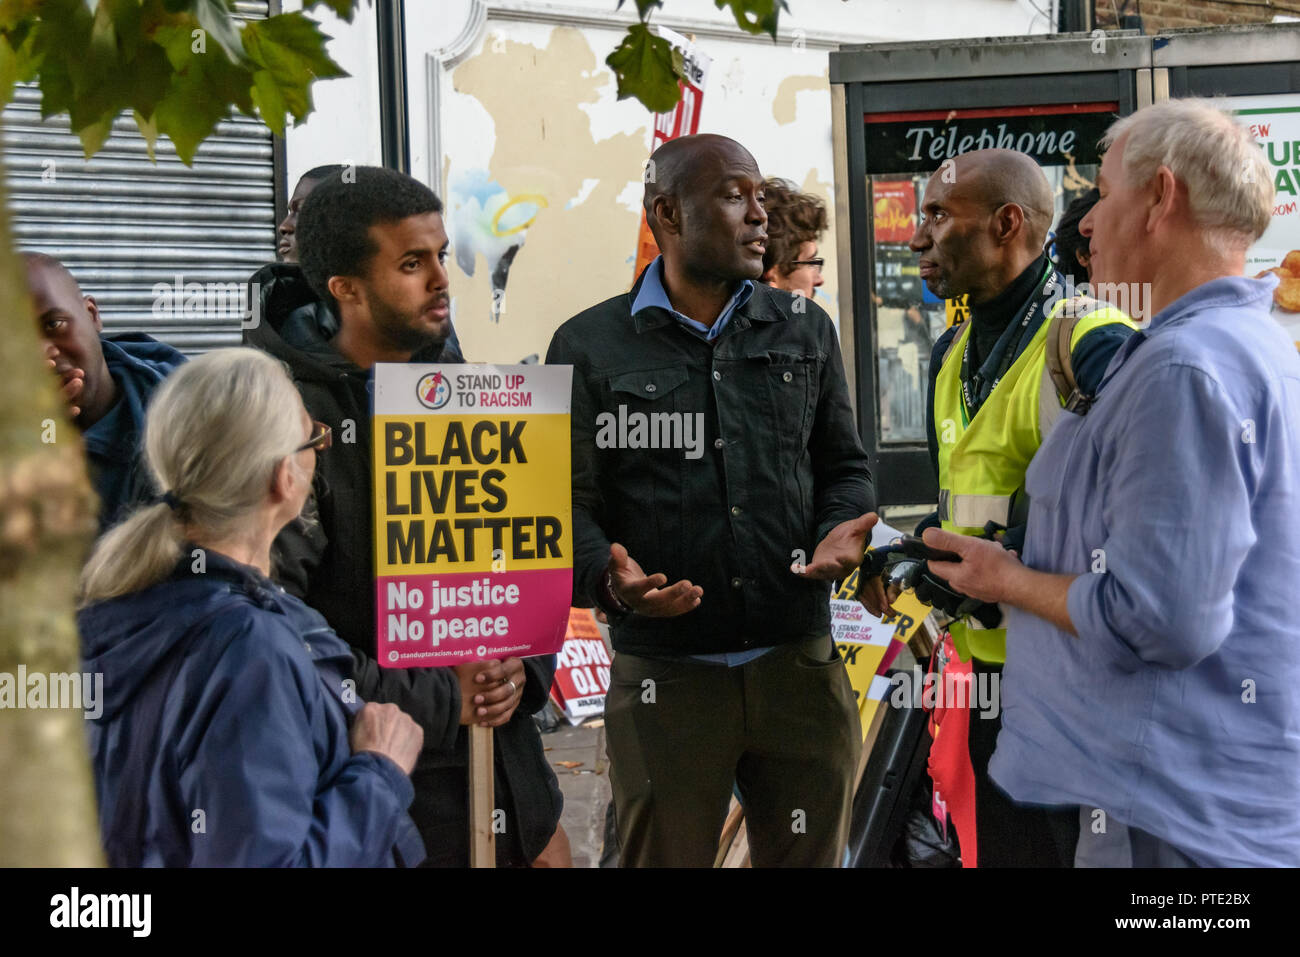 London, UK. October 9th 2018. People hold an animated discussion as they gather for a rally outside the New Atlas Cafe Restaurant where a young black man was attacked by police who used obviously unnecessary force when arresting him on suspicion of having been involved in a knife attack. He was assaulted by six officers, and was viciously kicked while officers struggled to handcuff him, andwhen he was well under control and held on the ground he was sprayed in the face with CS gas. Credit: Peter Marshall/Alamy Live News - Stock Image